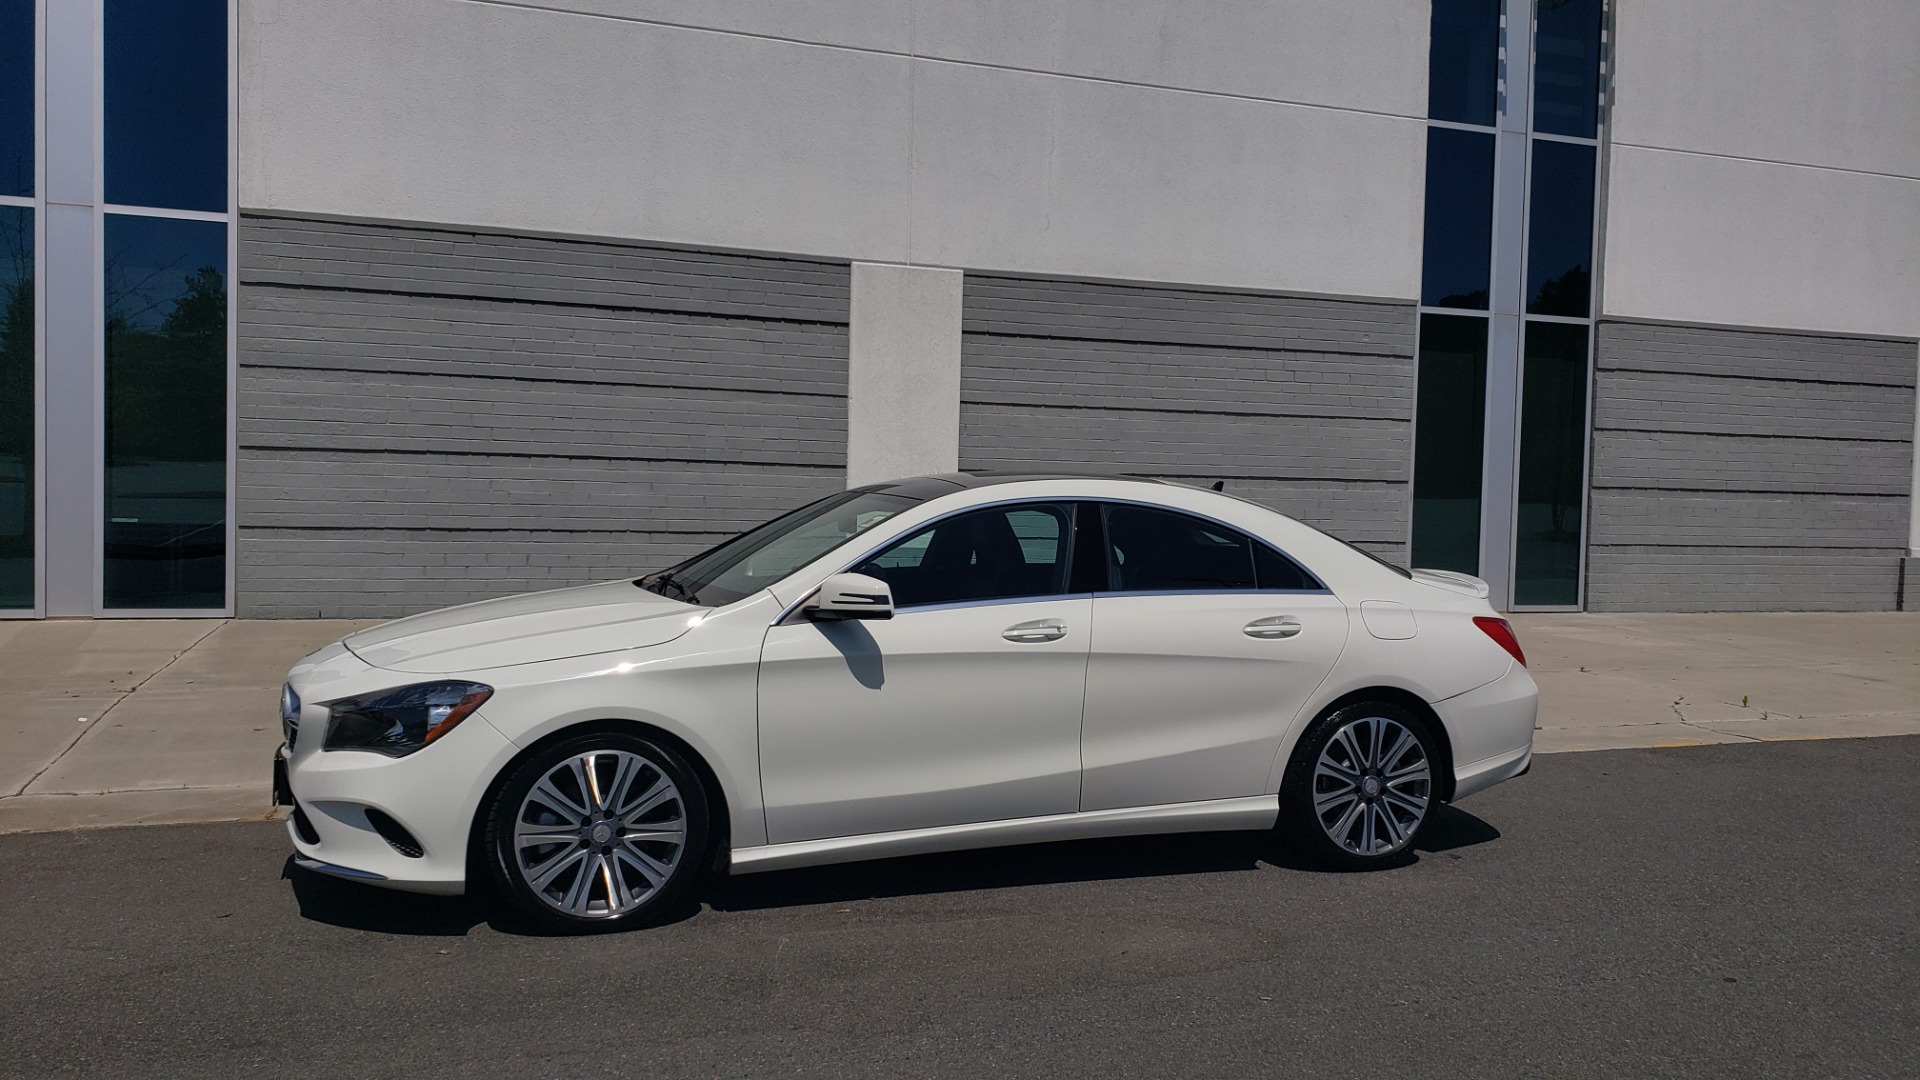 Used 2018 Mercedes-Benz CLA 250 4MATIC PREMIUM / PANO-ROOF / CONV PKG / APPLE / REARVIEW for sale $25,395 at Formula Imports in Charlotte NC 28227 3